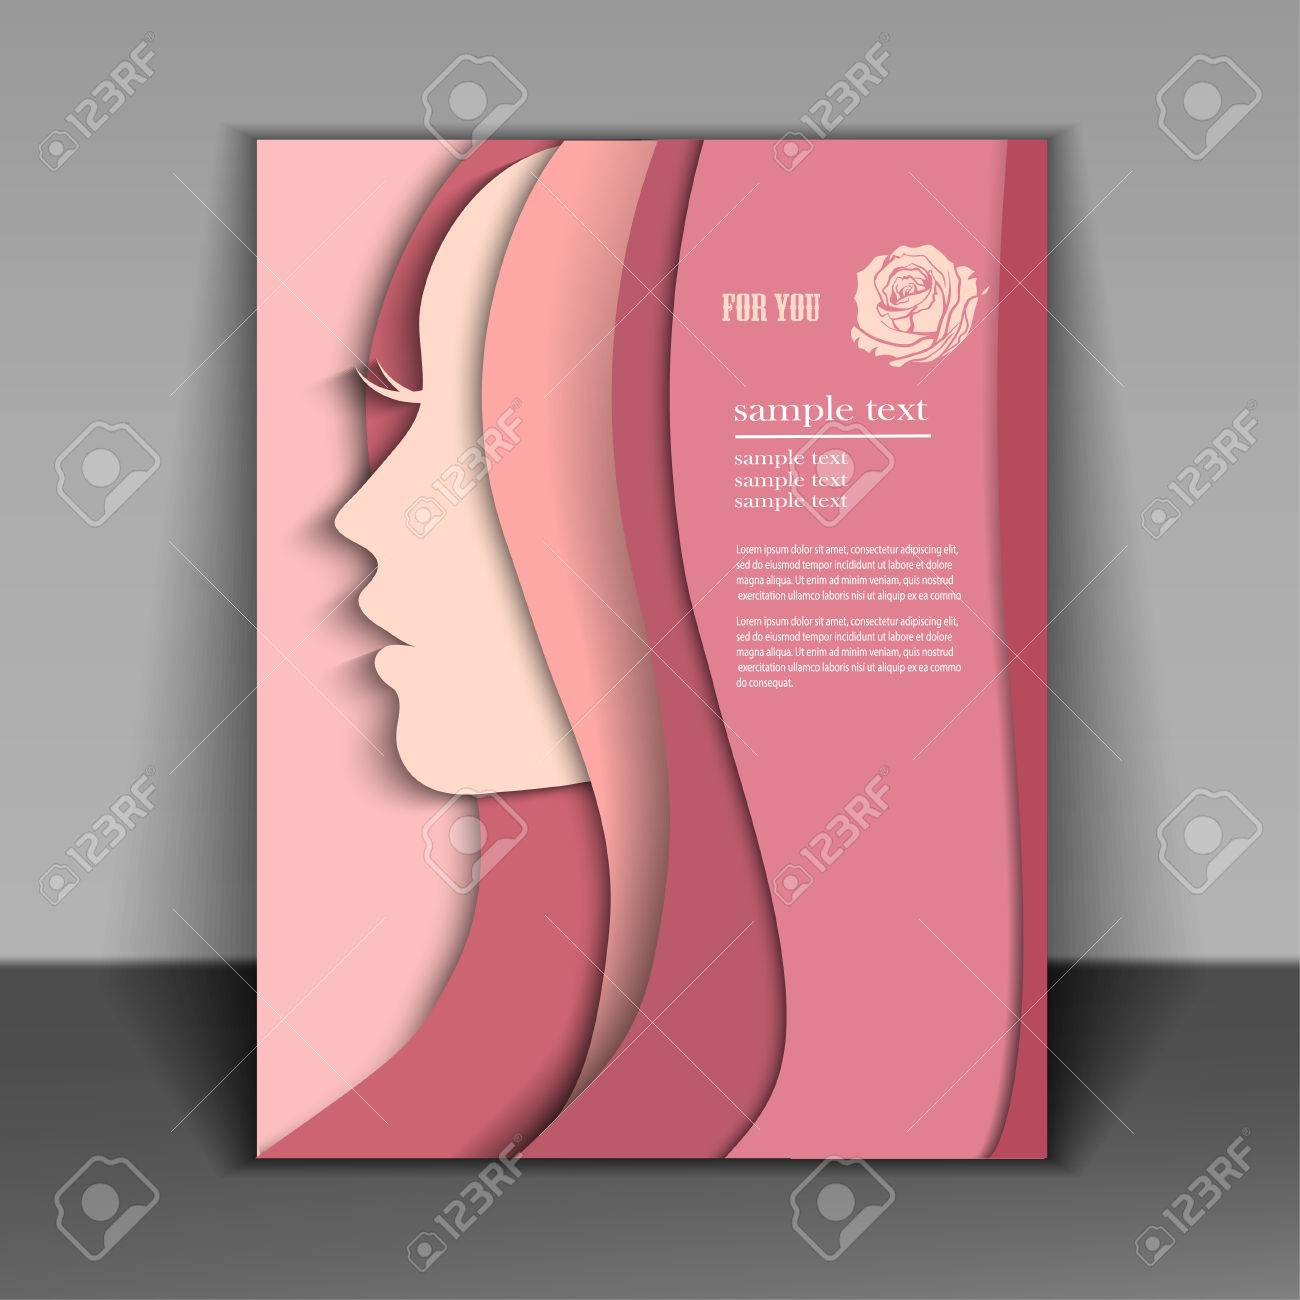 silhouette of a women on pink background for Happy Women's Day. - 36026706